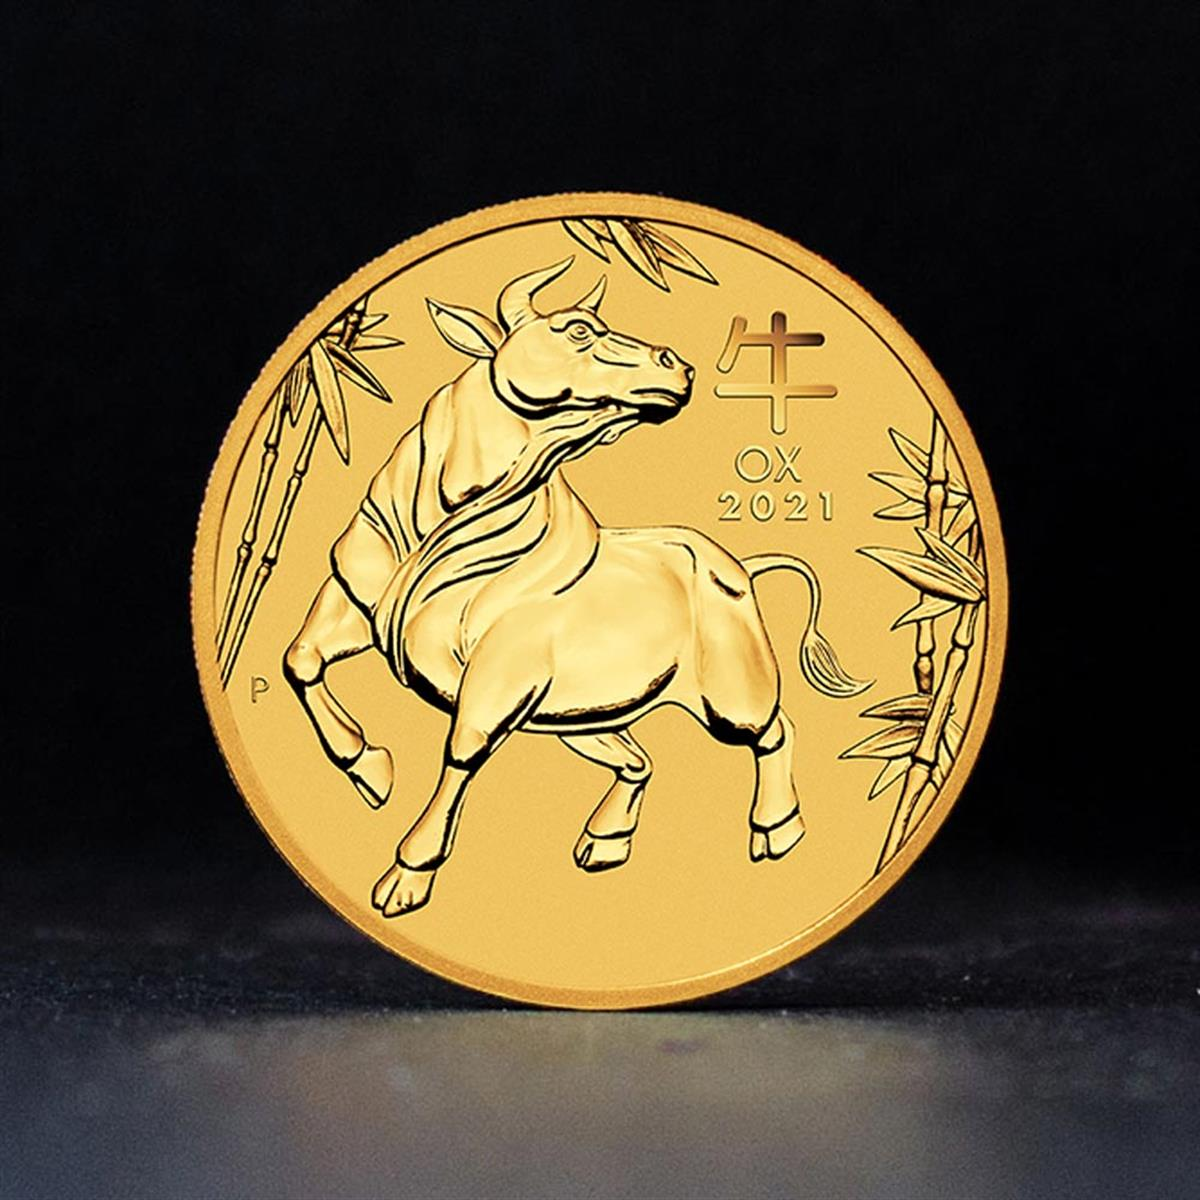 1/20oz Gold Coin 2021 Year of the Ox - Perth Mint